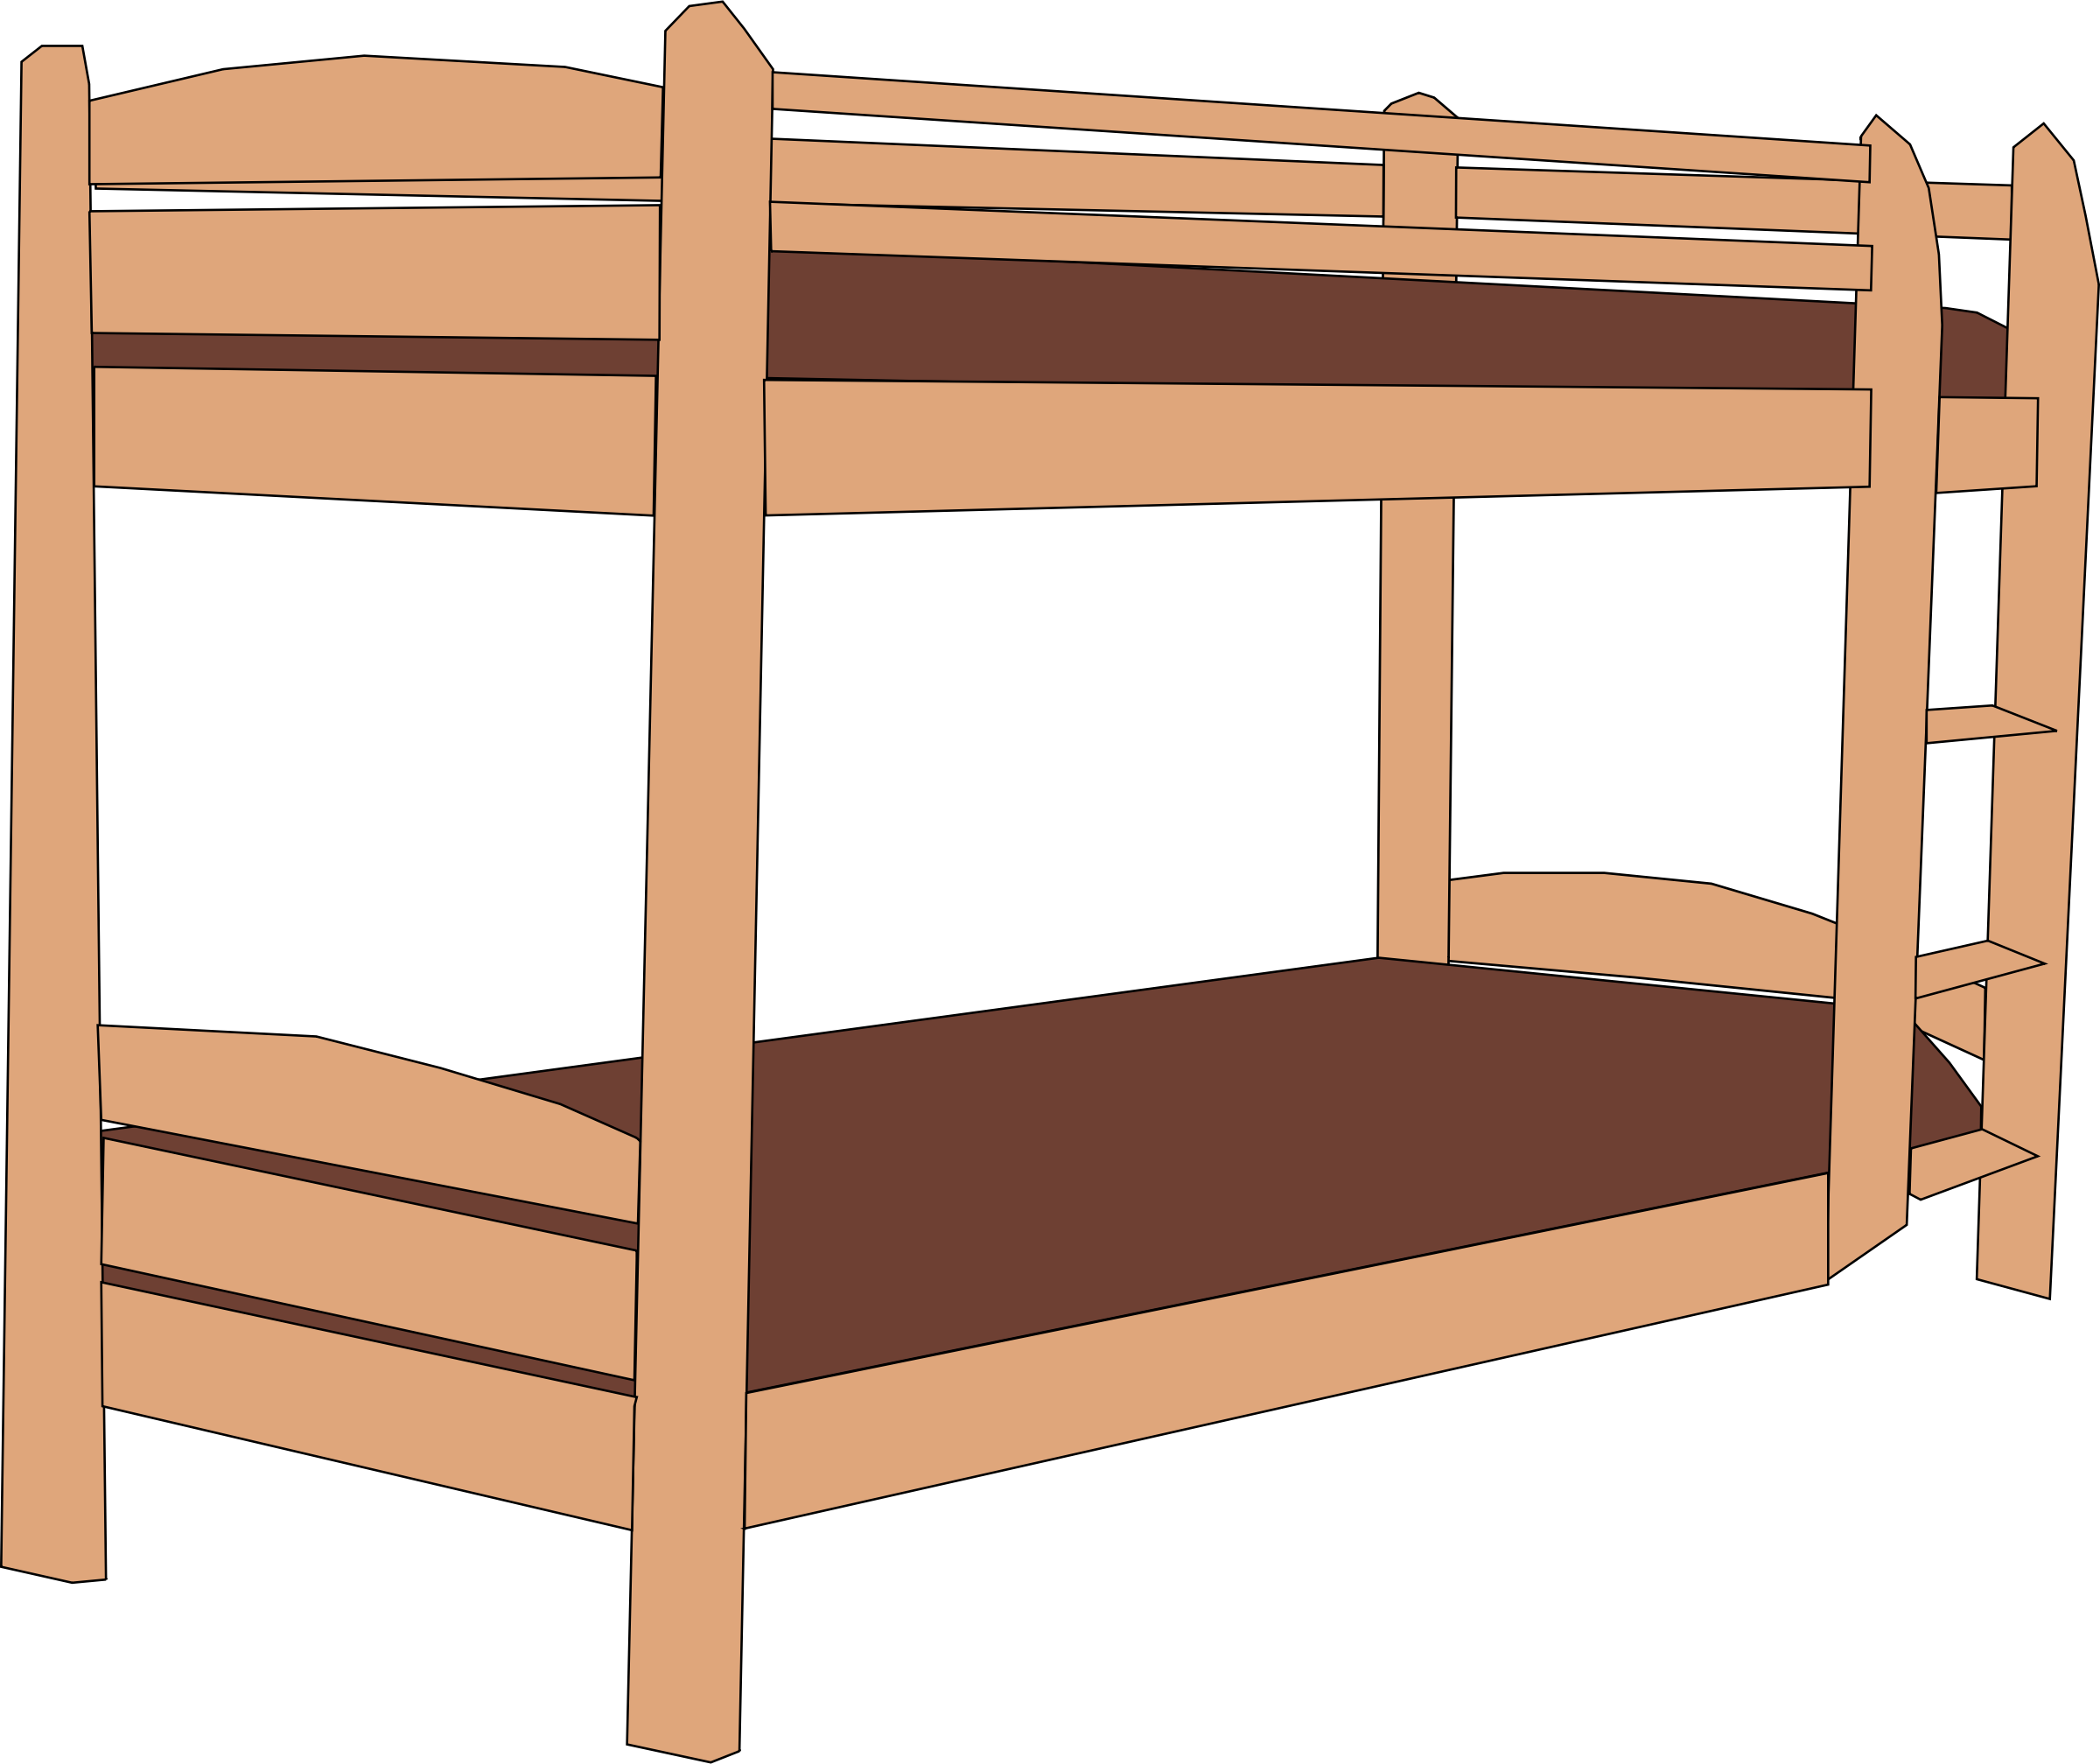 Drawing bedroom animated. Cartoon pictures of beds